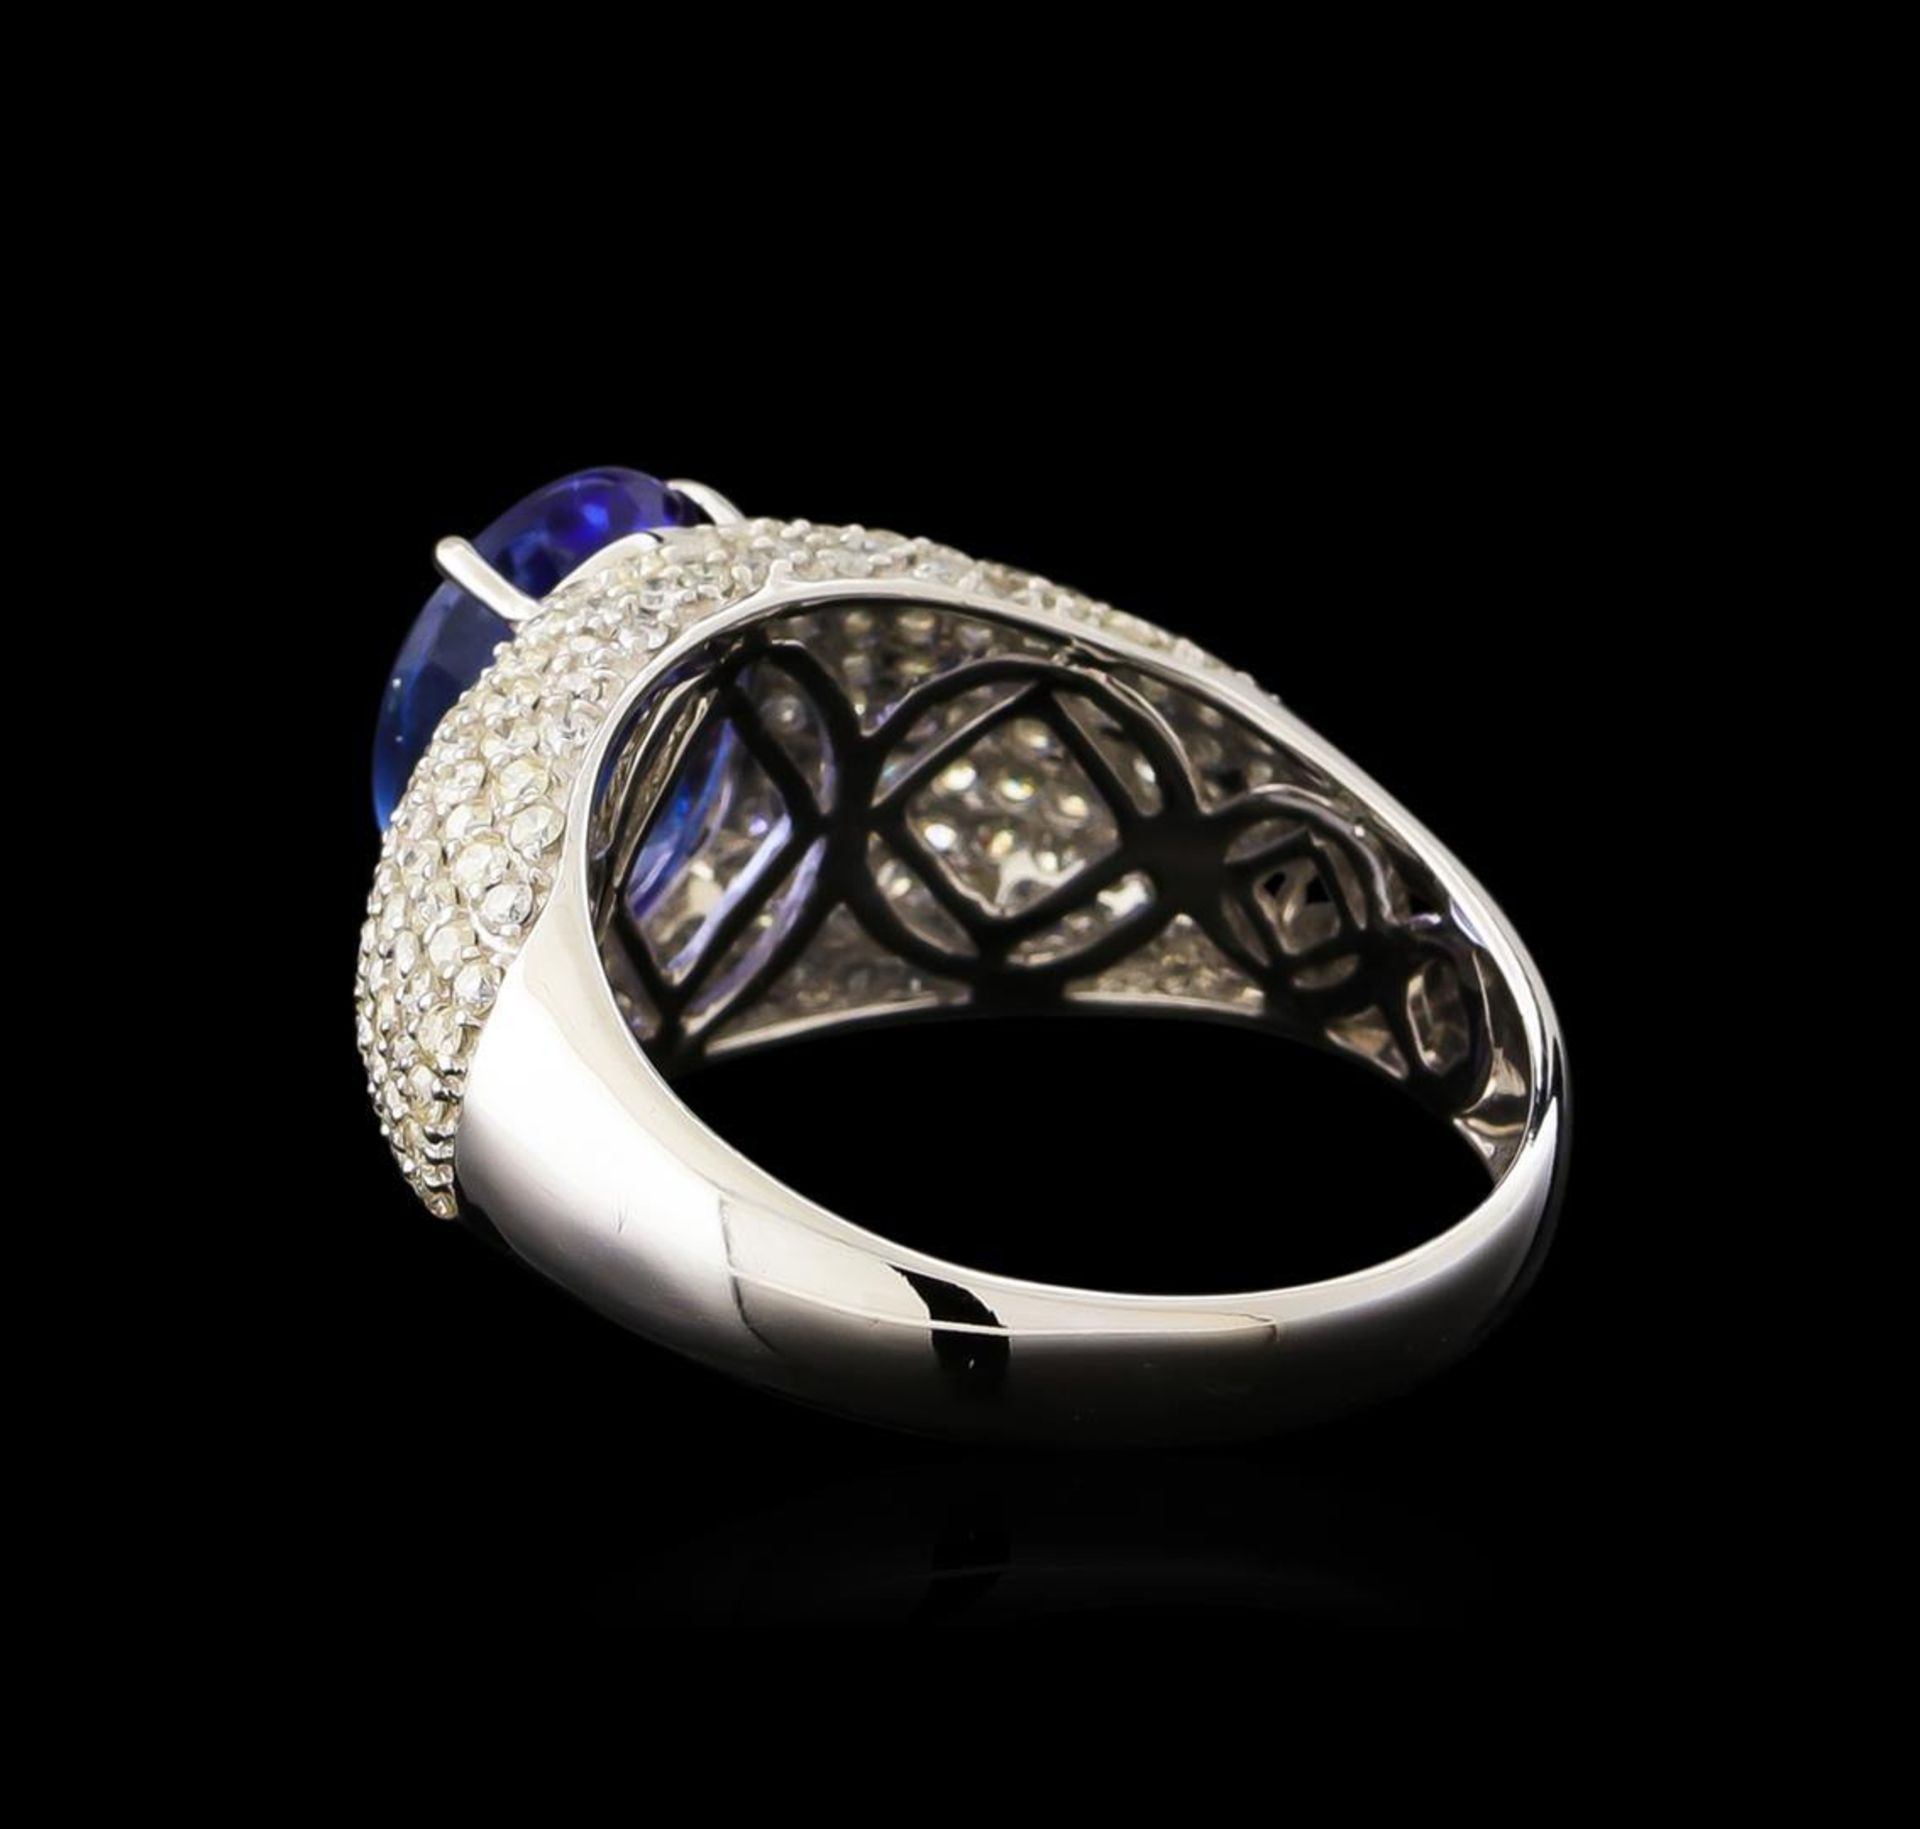 2.77ct Tanzanite and Diamond Ring - 14KT White Gold - Image 3 of 5